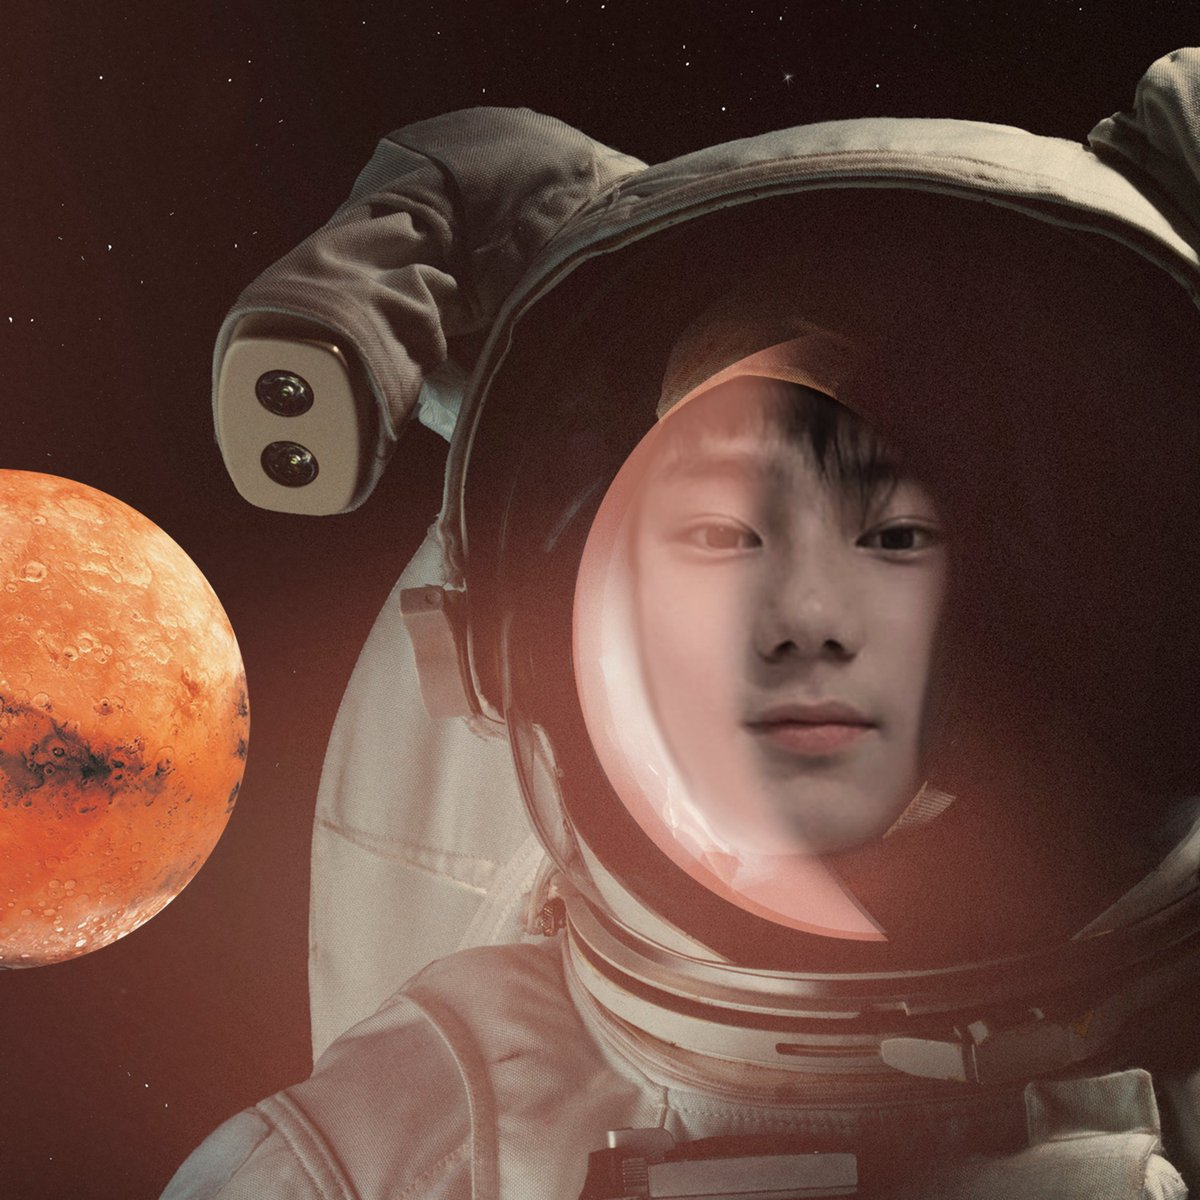 @mariannemaexcxc bring BTS to the Martians